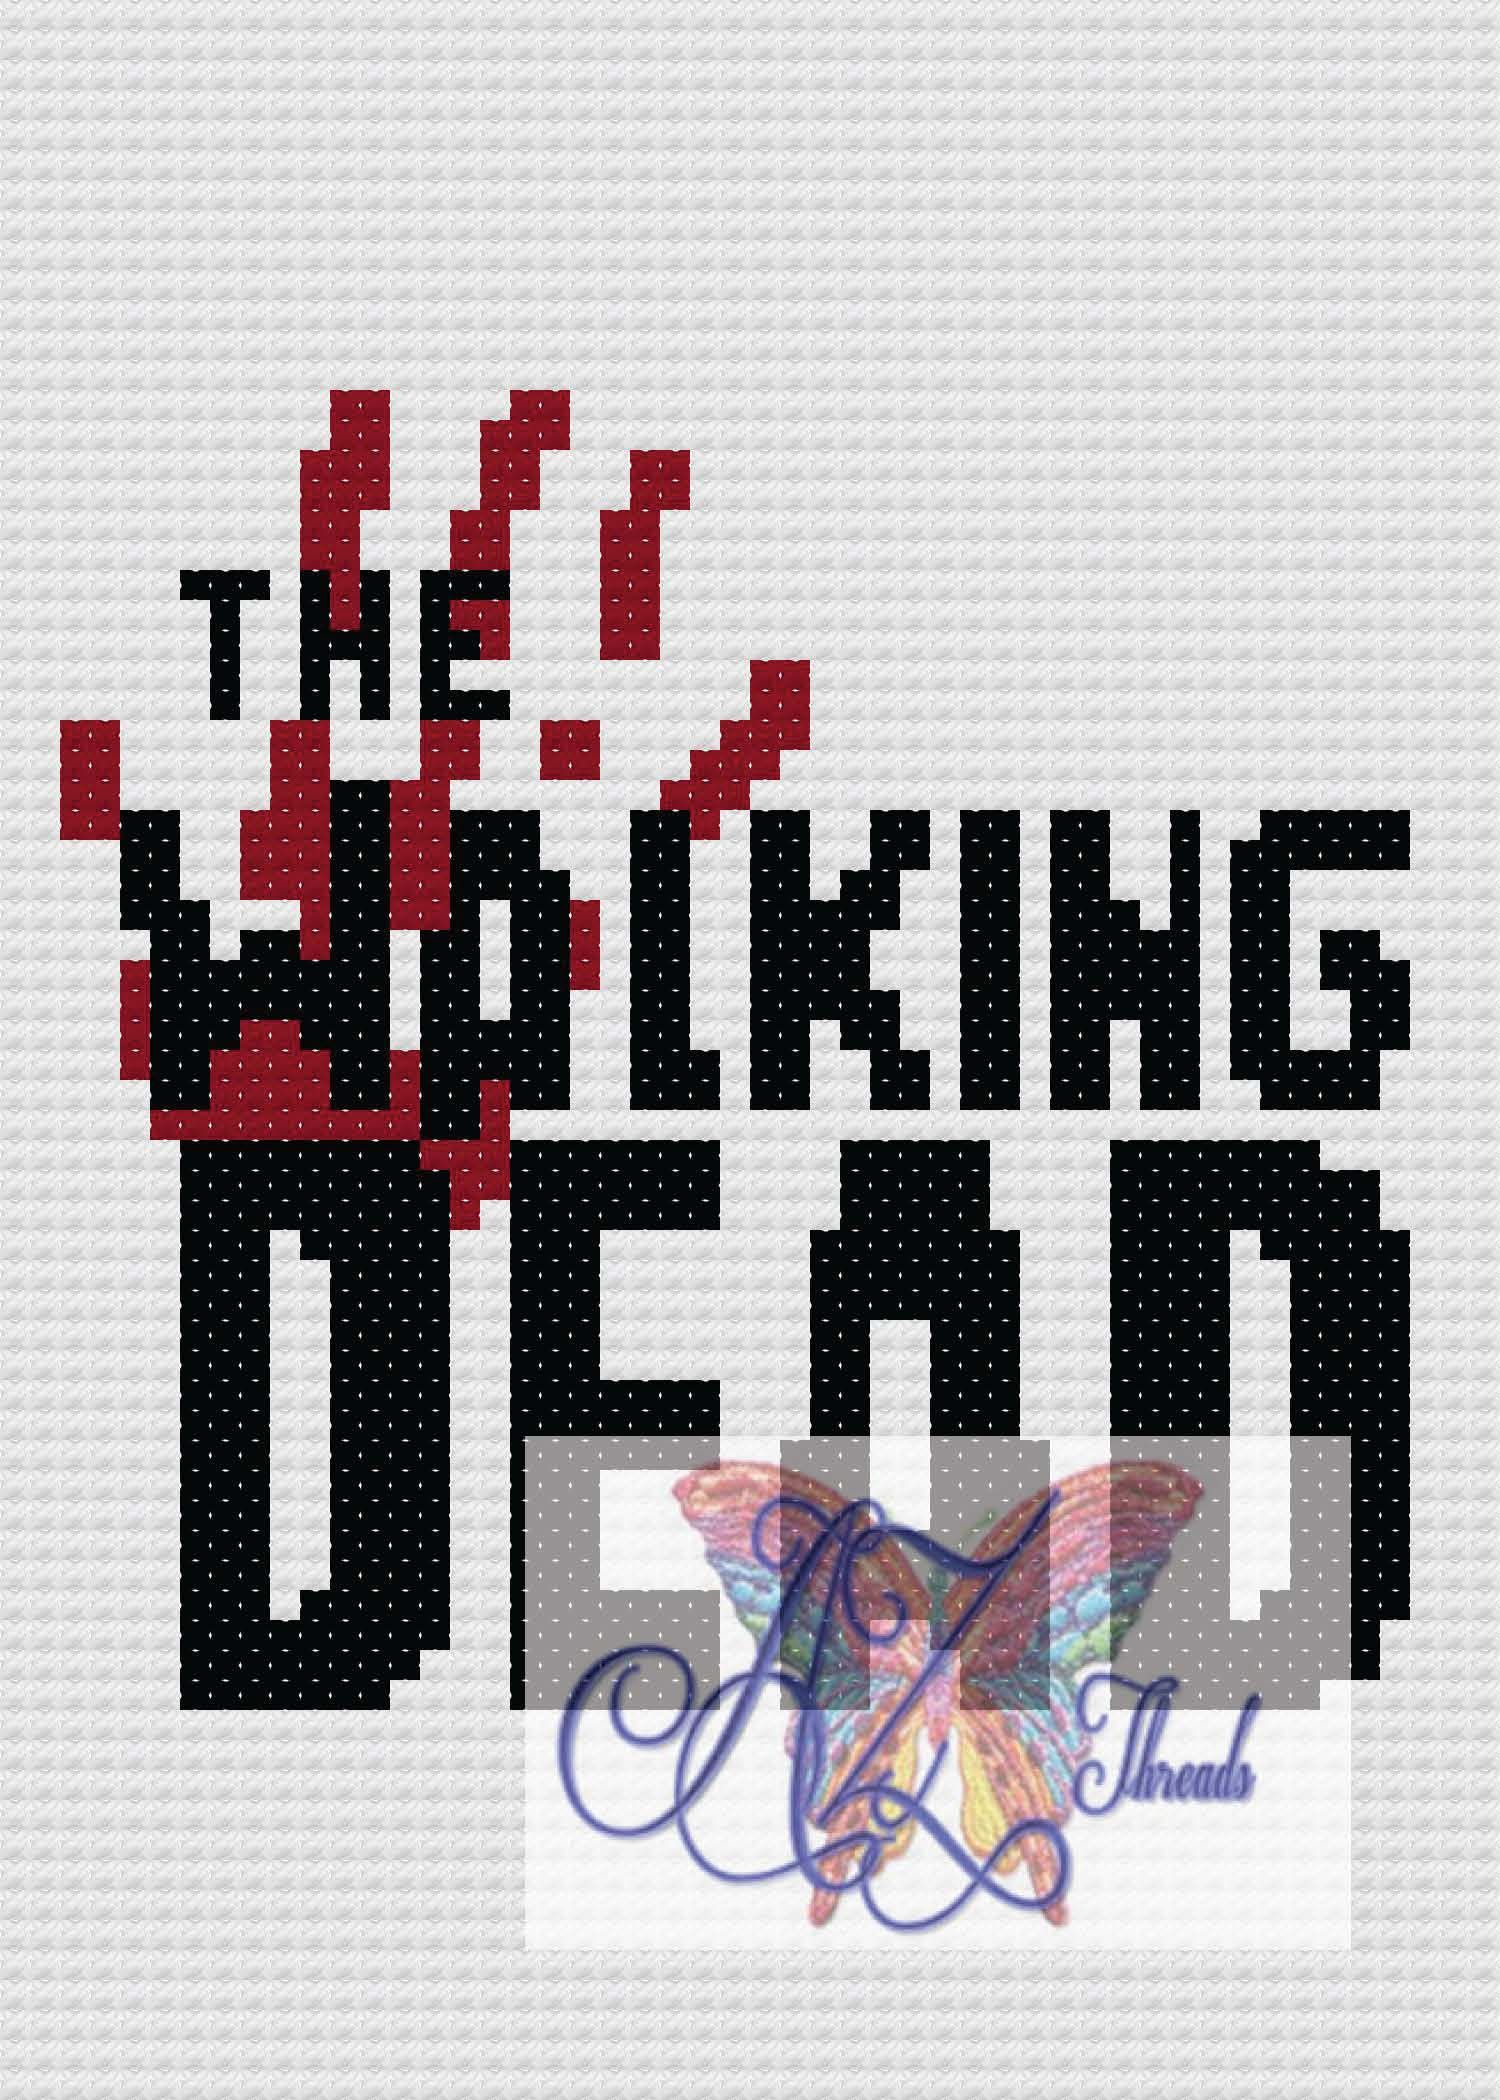 Walking dead logo c2c 3035 and 5070 graphs tv shows patterns bankloansurffo Image collections